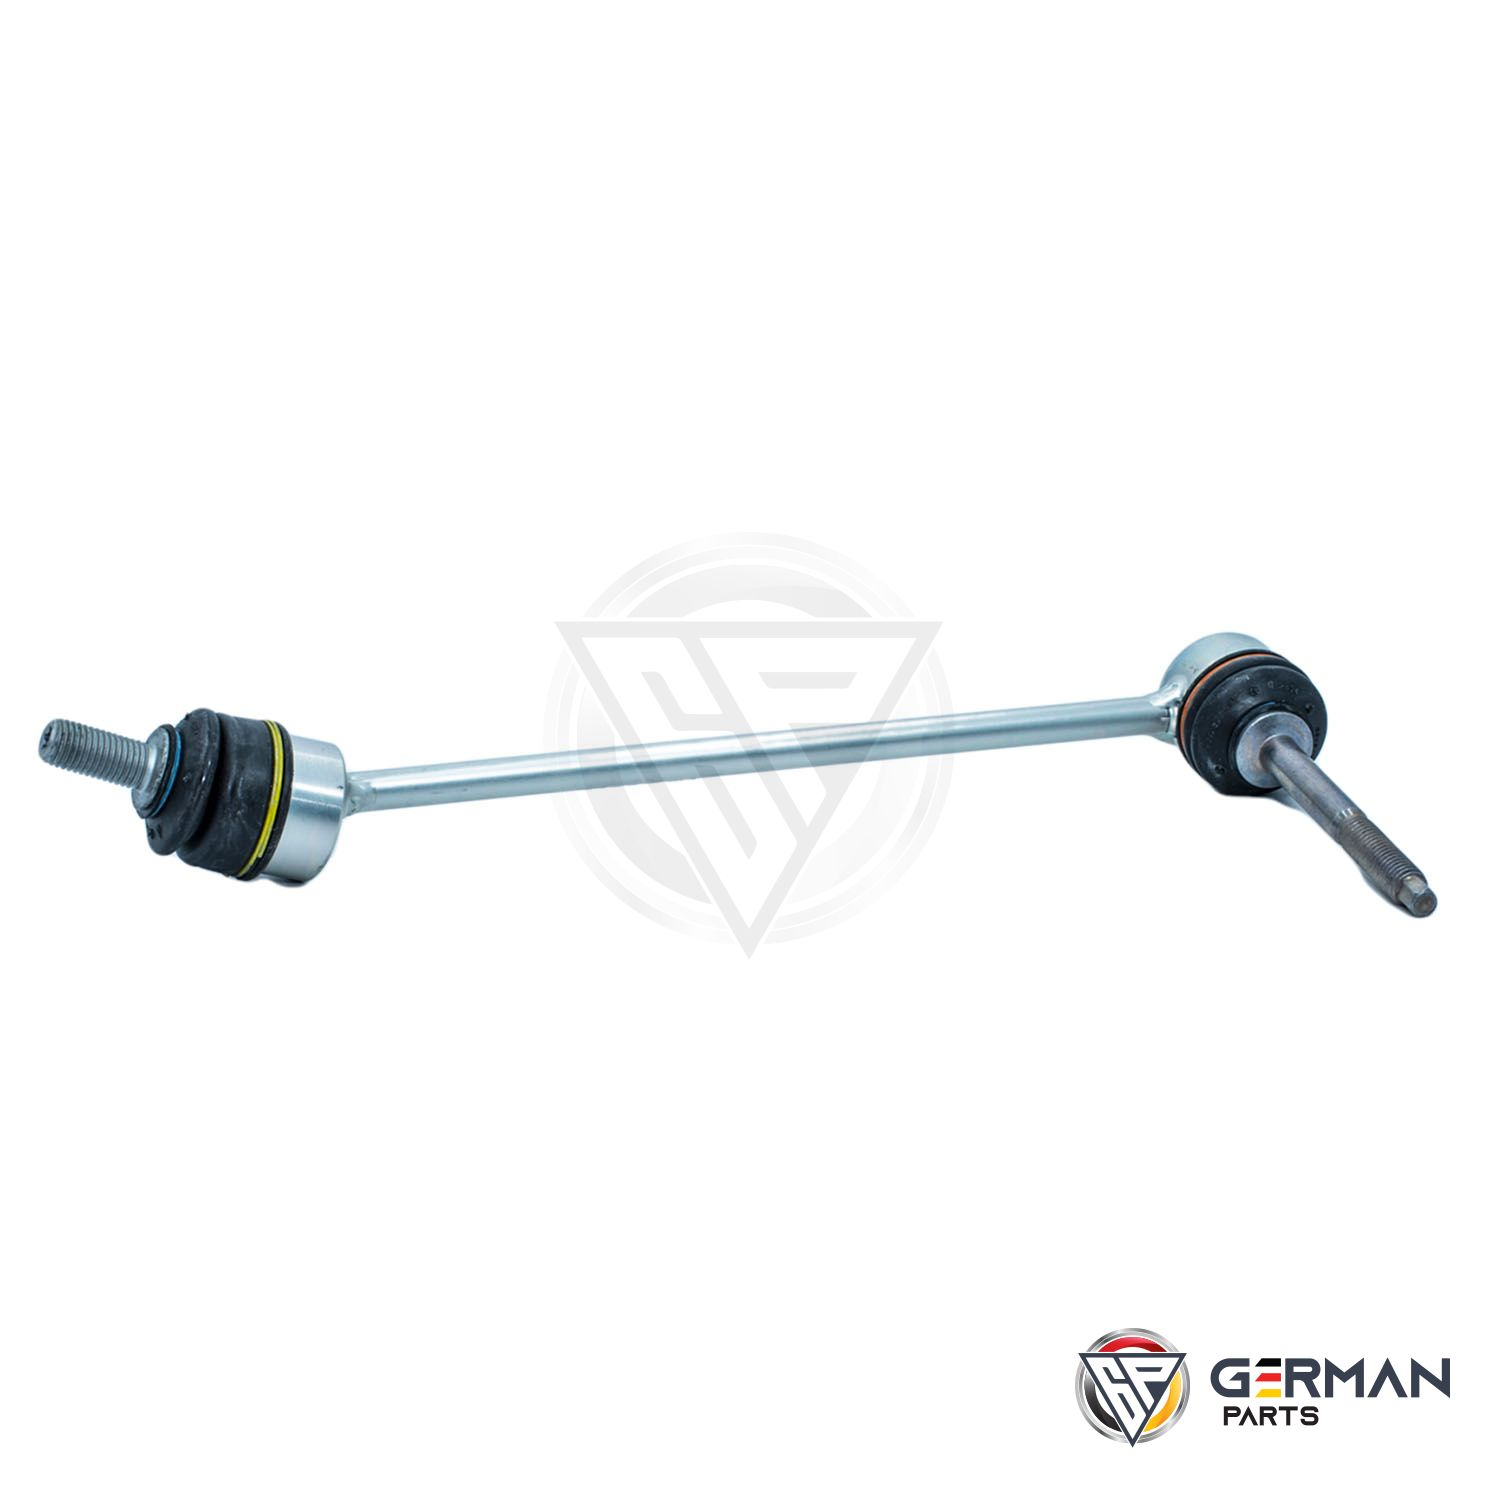 Buy Genuine Mercedes Benz Stabilizer Link Right 2223201689 - German Parts